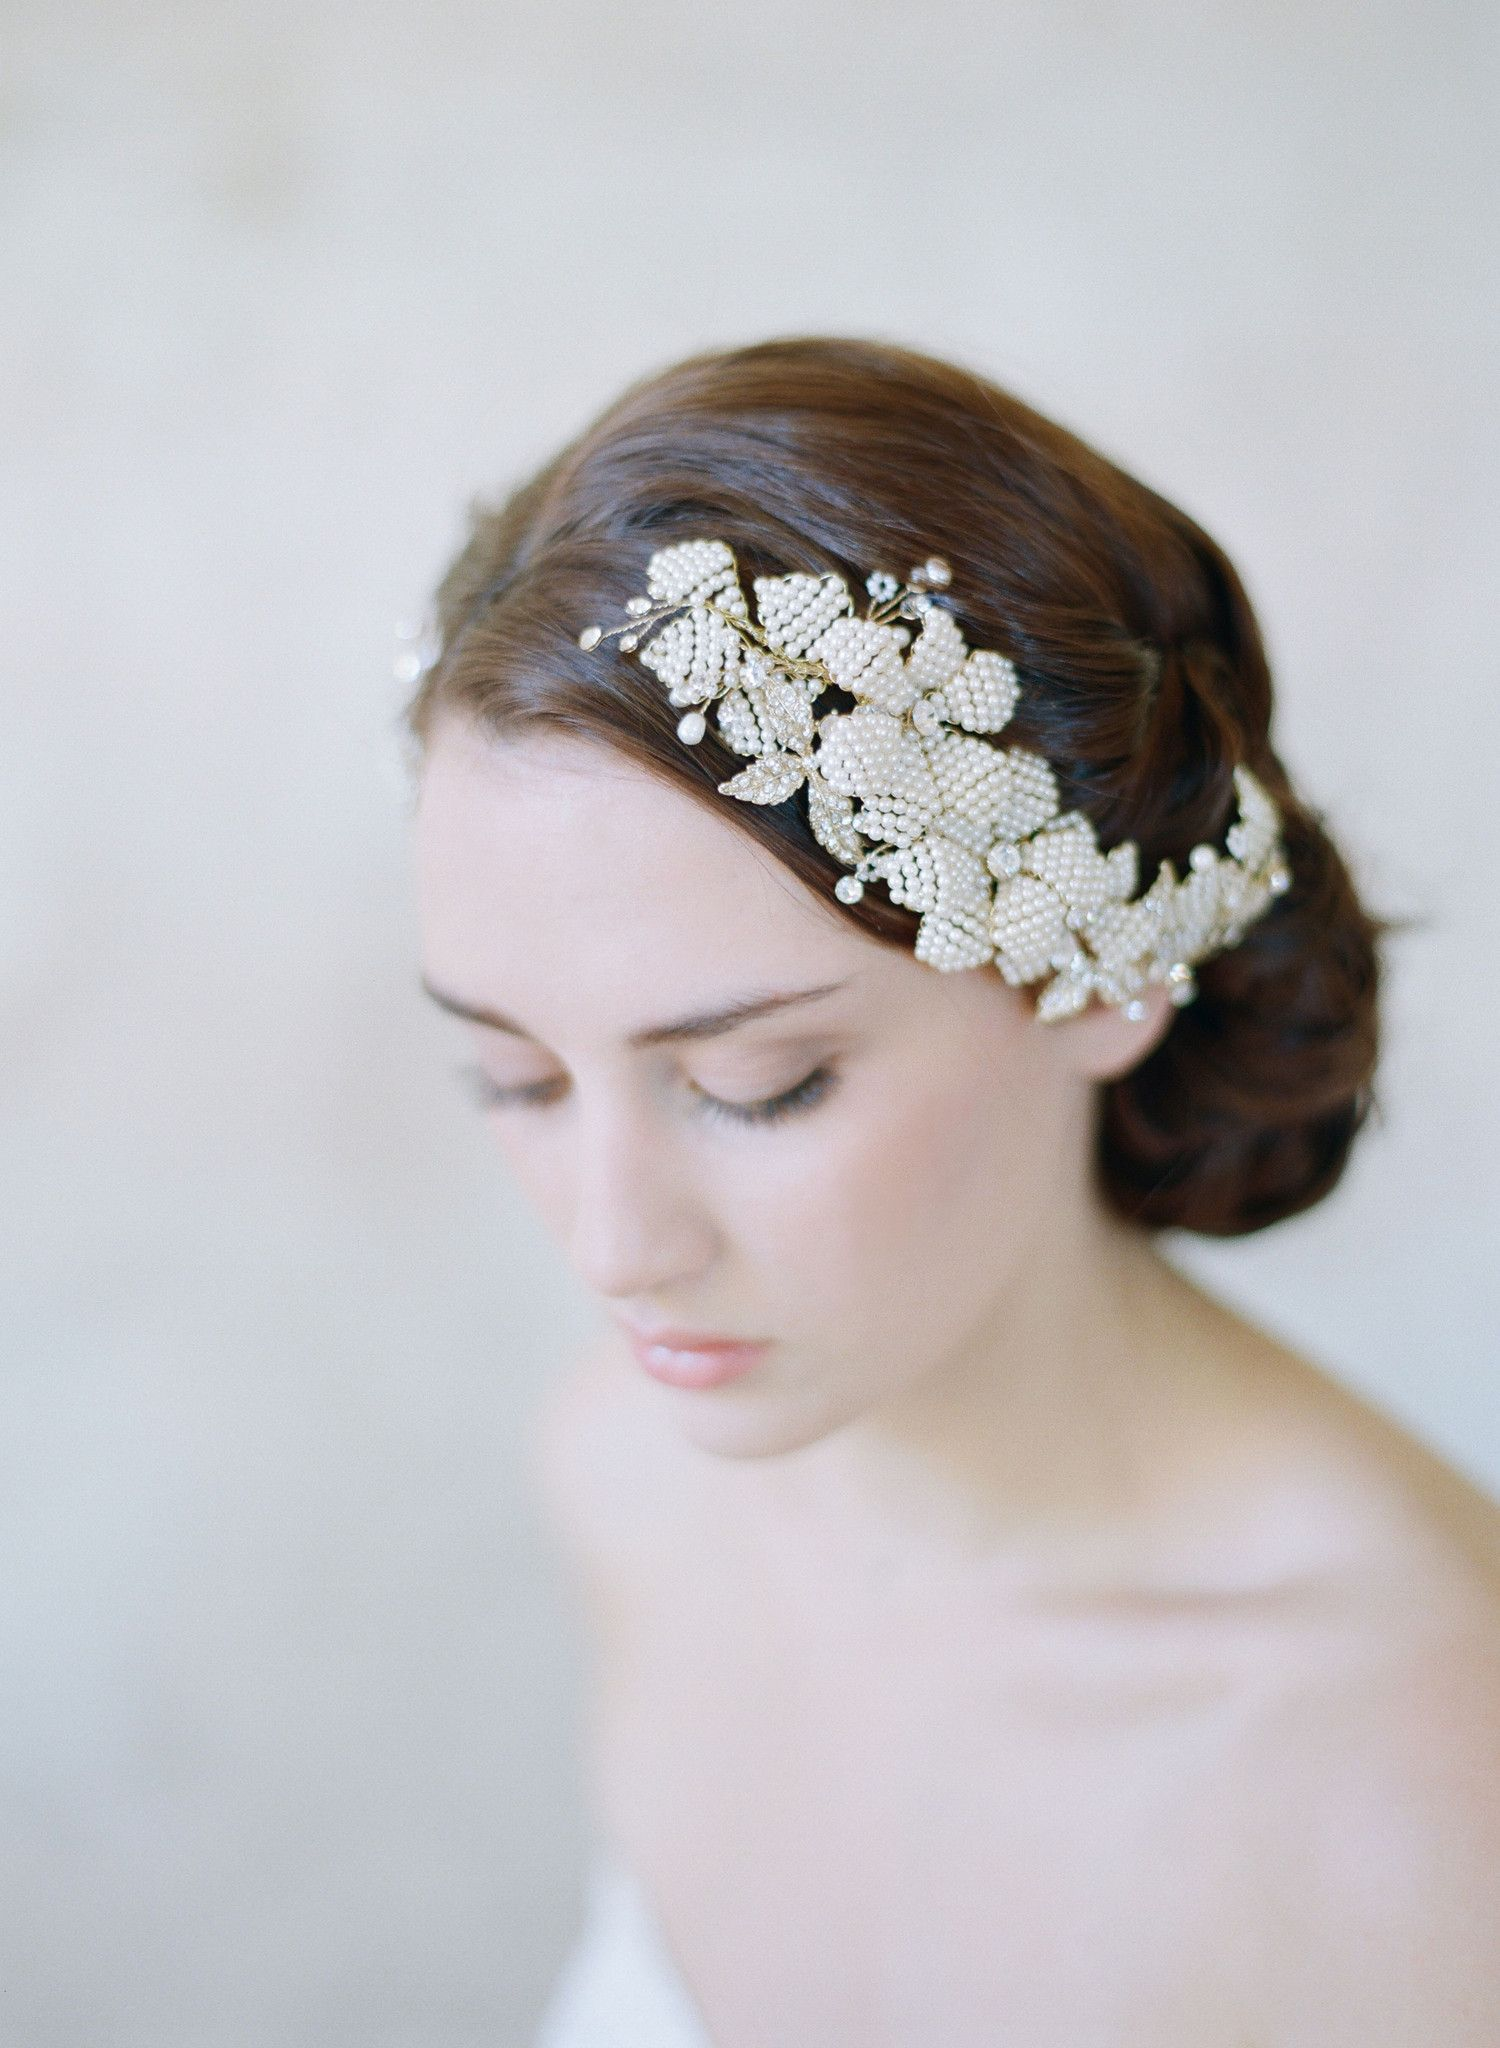 Contemporary Wedding Tiara Hairstyles Image - The Wedding Ideas ...